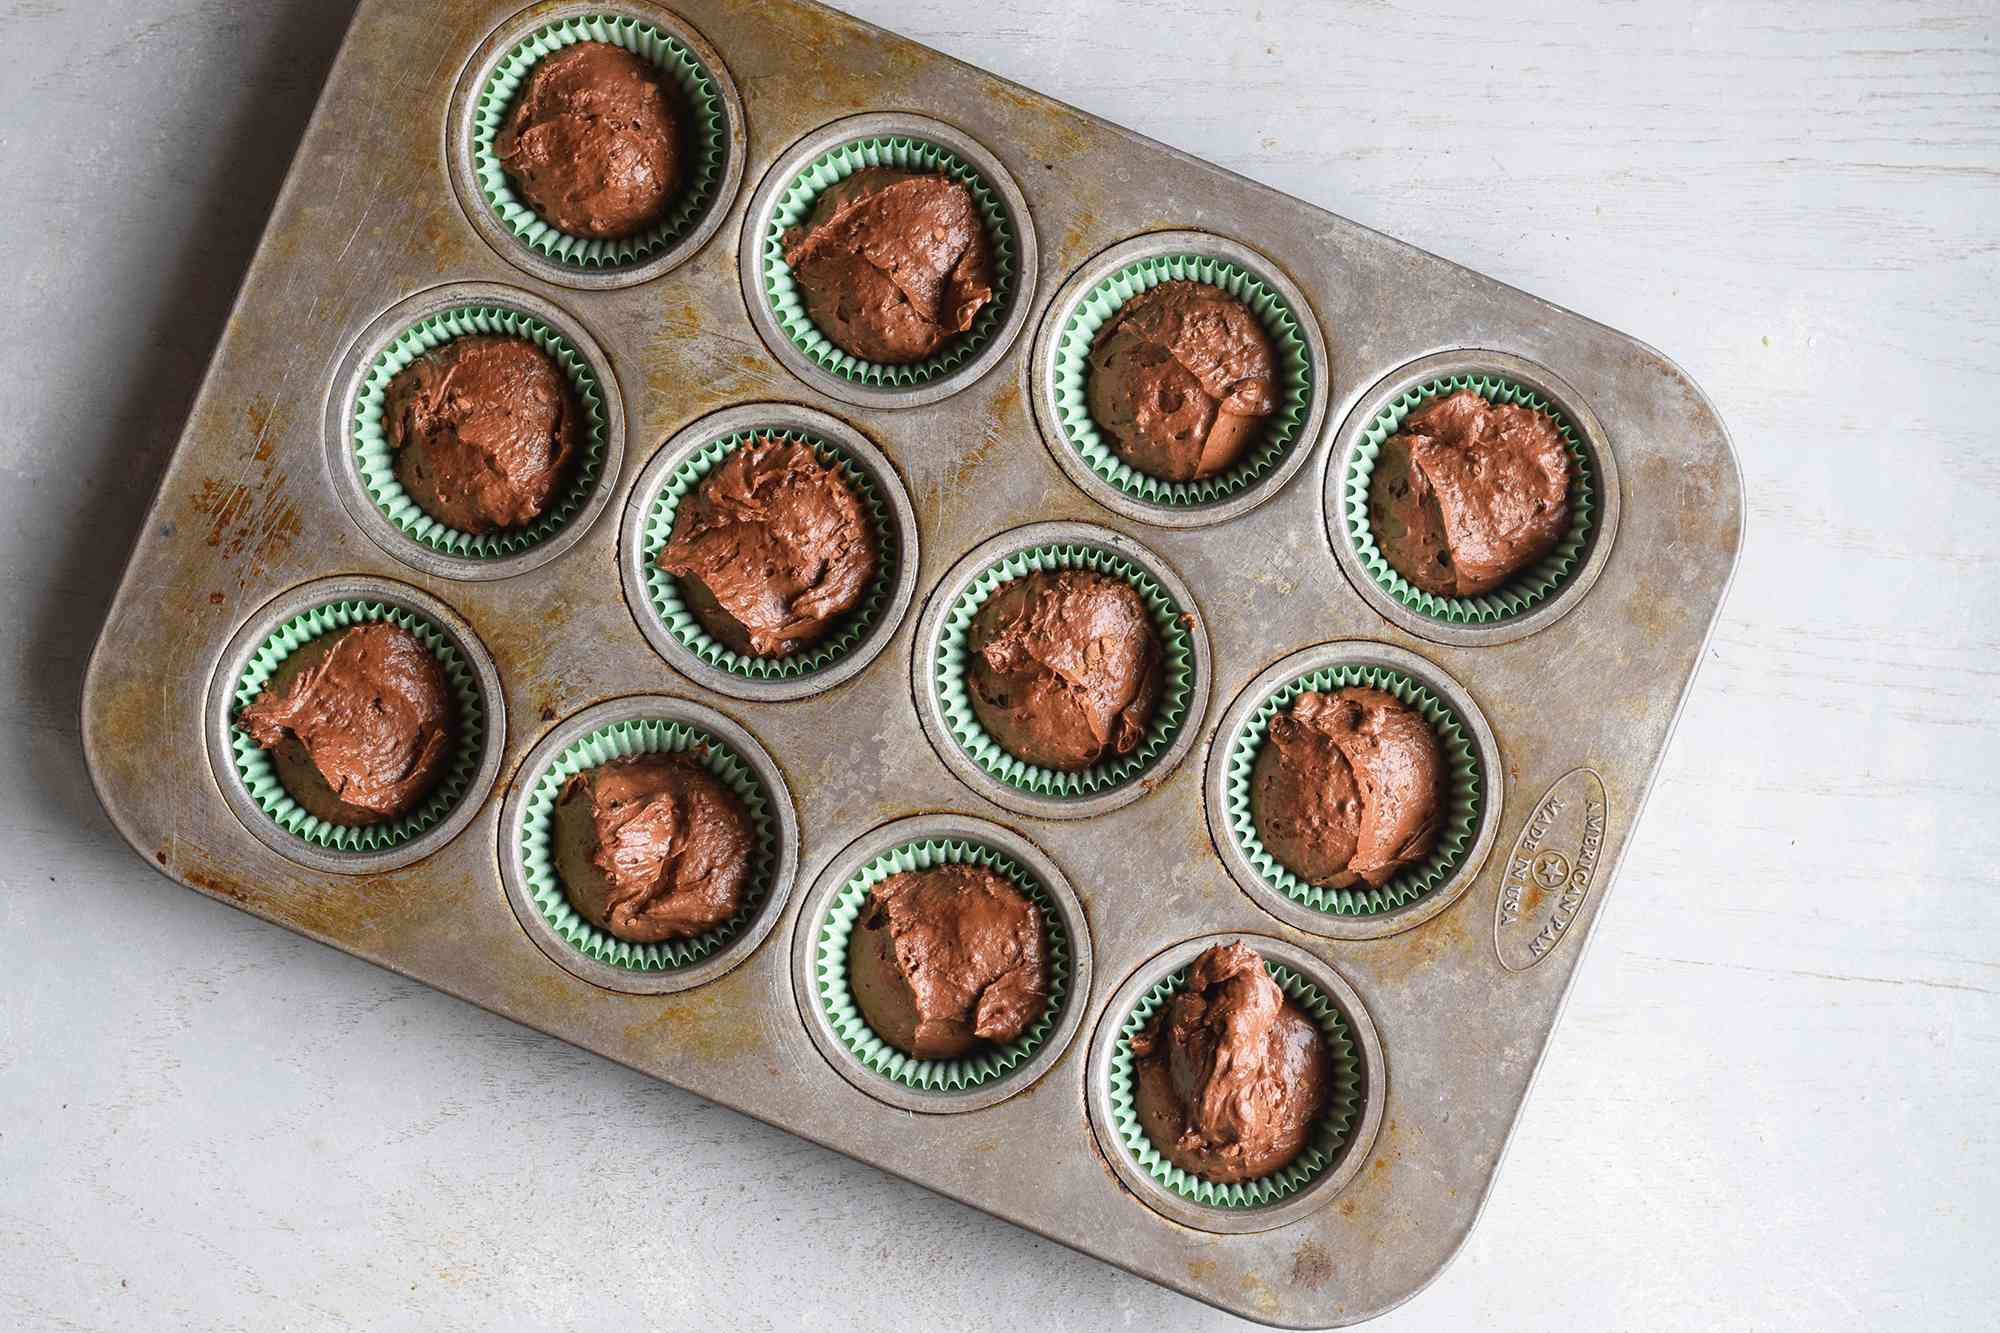 Chocolate cupcake batter in liners